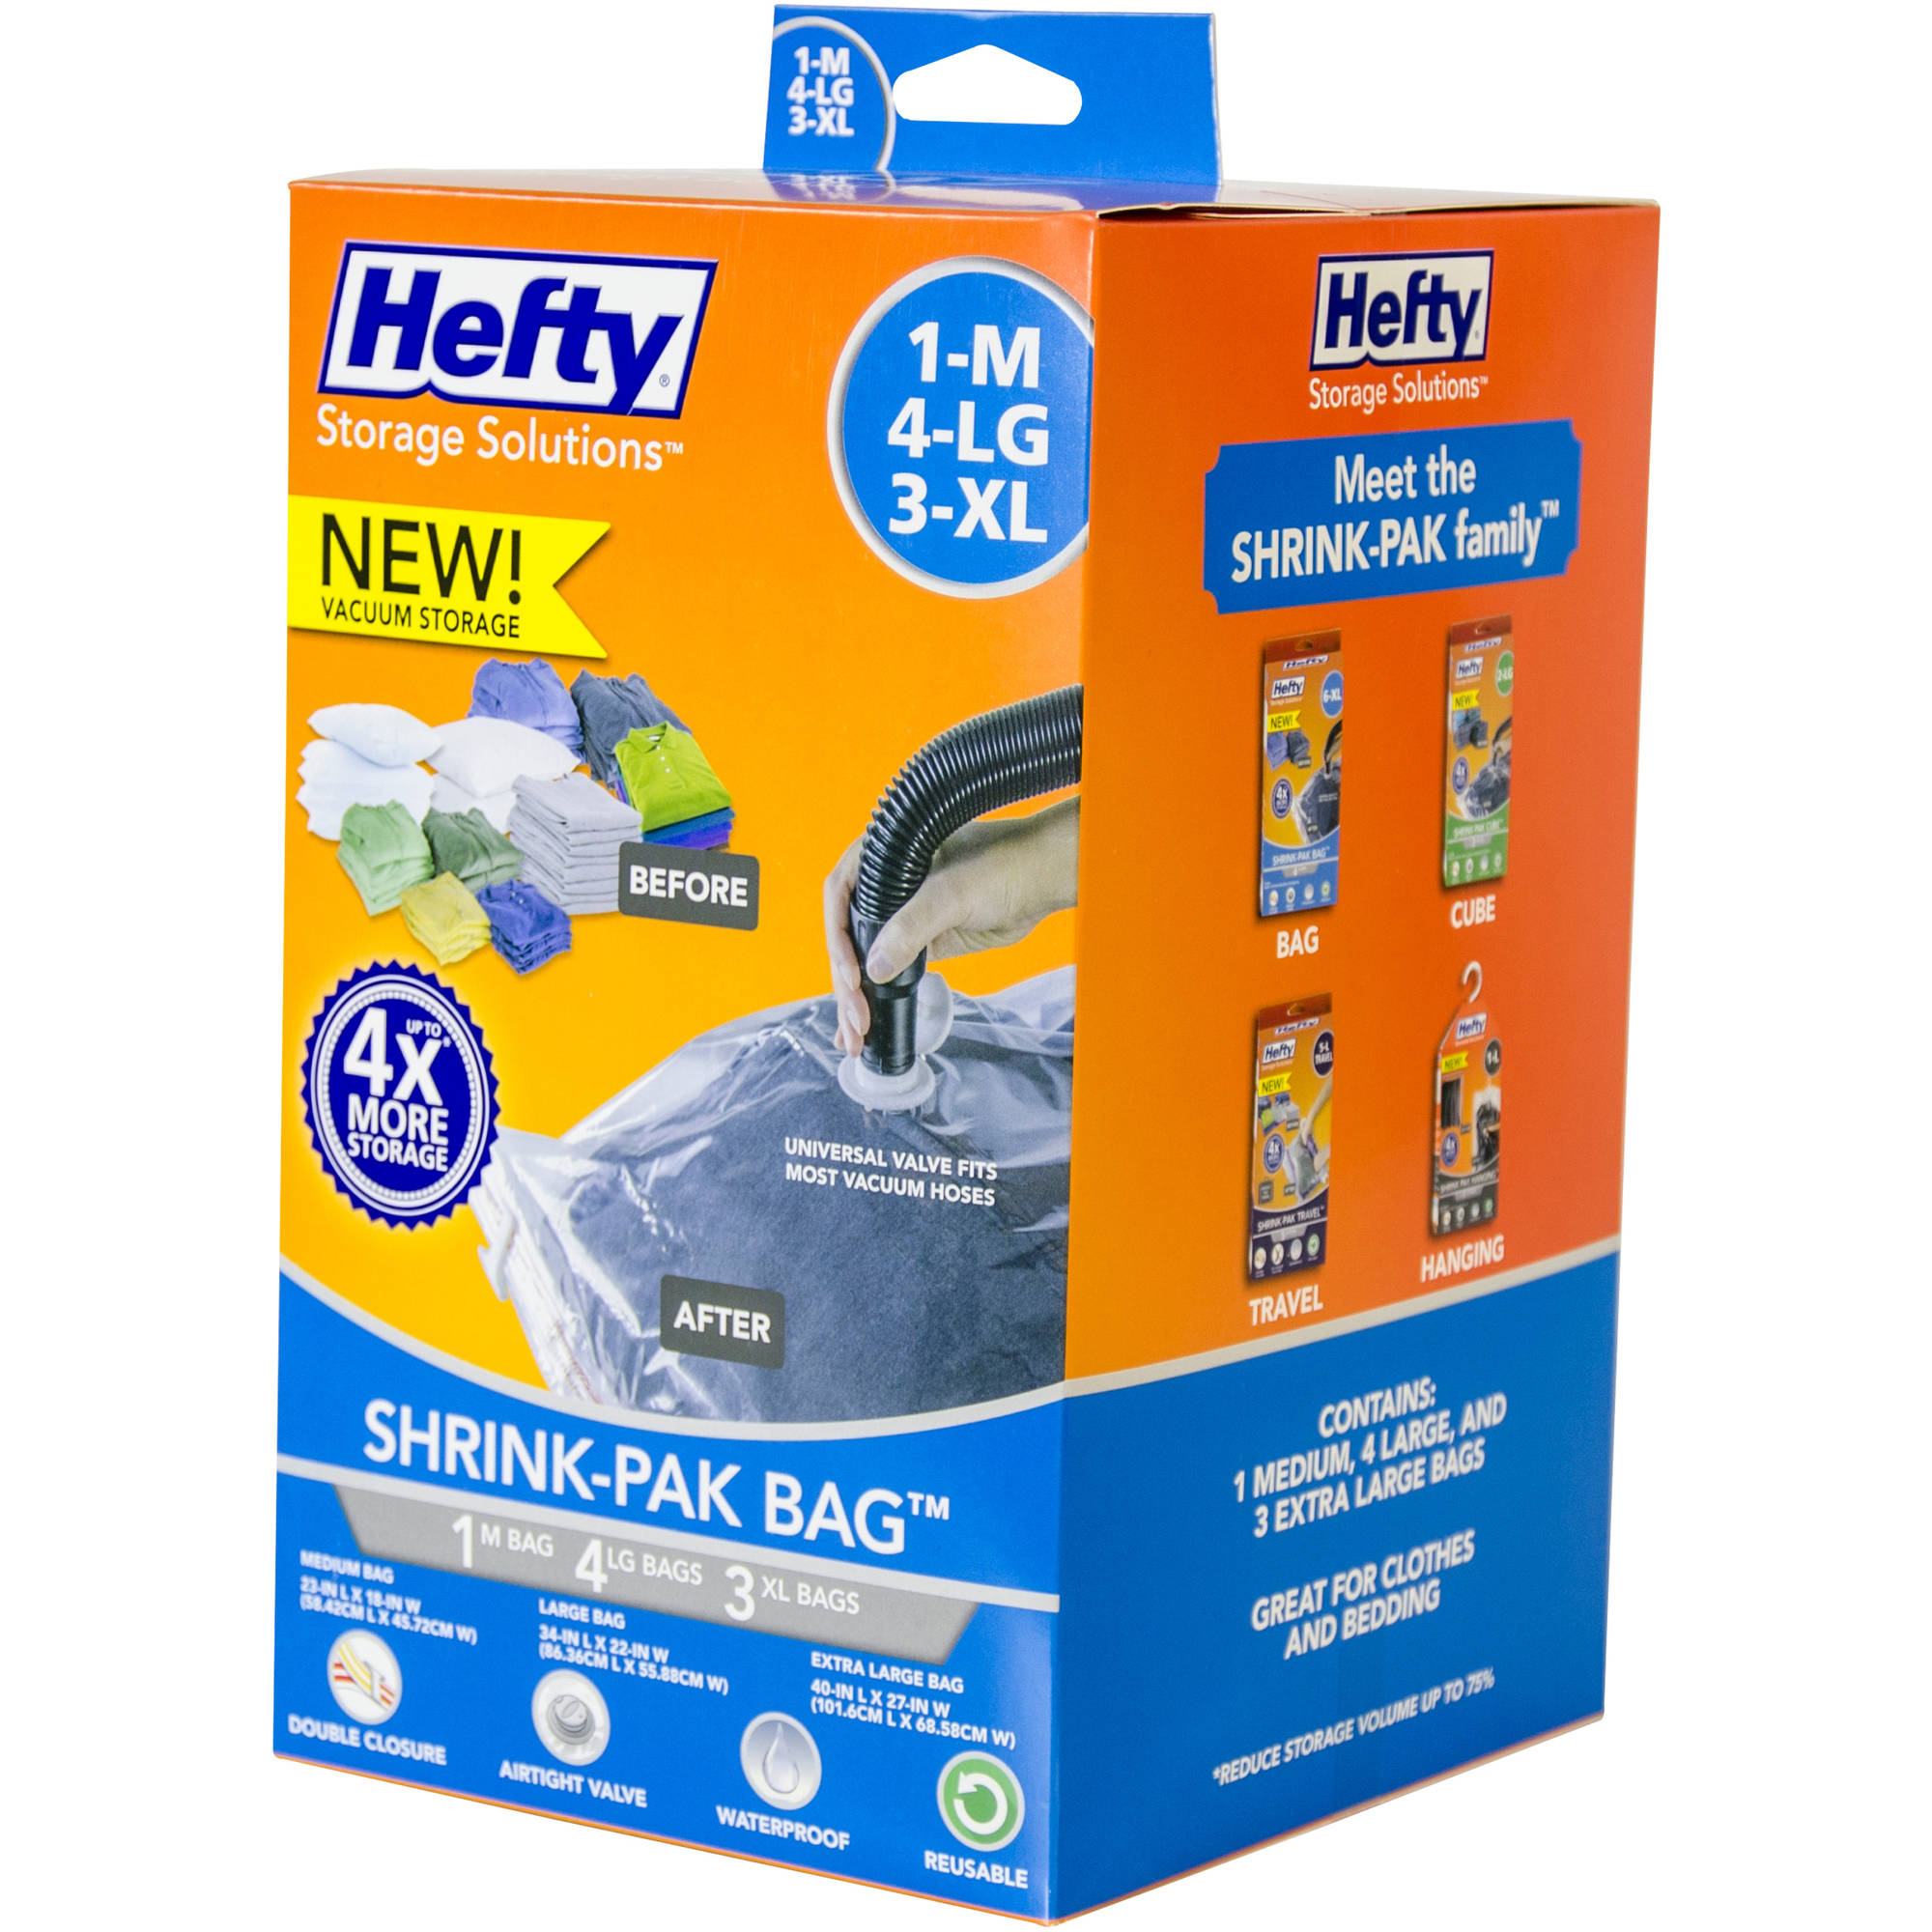 Hefty Shrink-Pak Vacuum Seal Bags, 1 Medium, 4 Large and 3 X-Large Bags